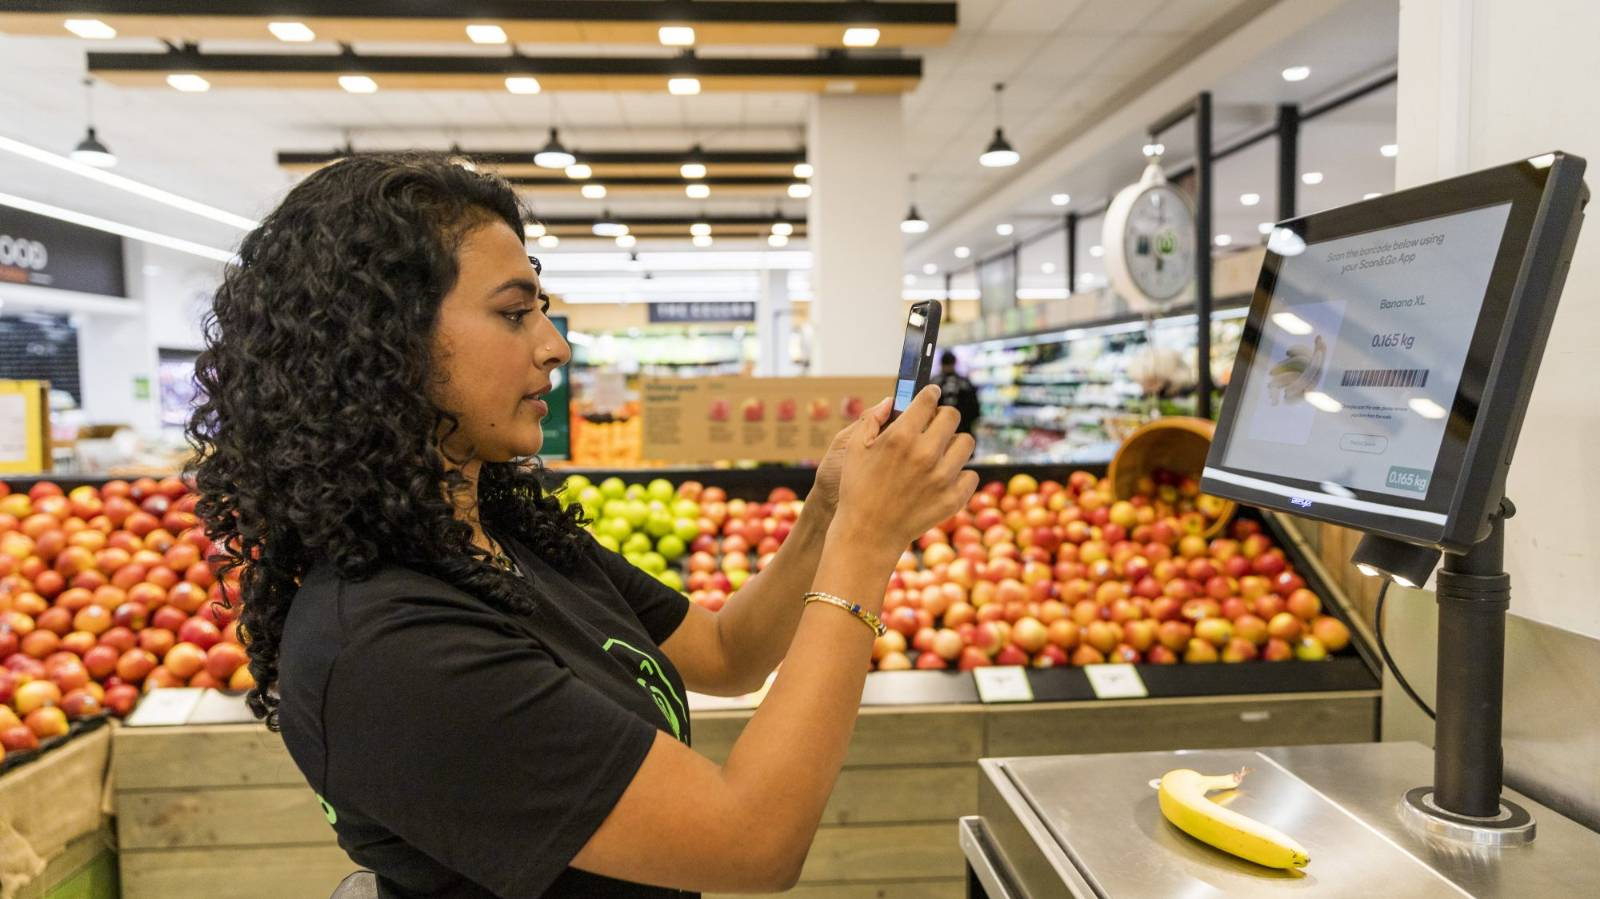 Countdown trials contactless 'scan and go' service at Auckland Ponsonby store